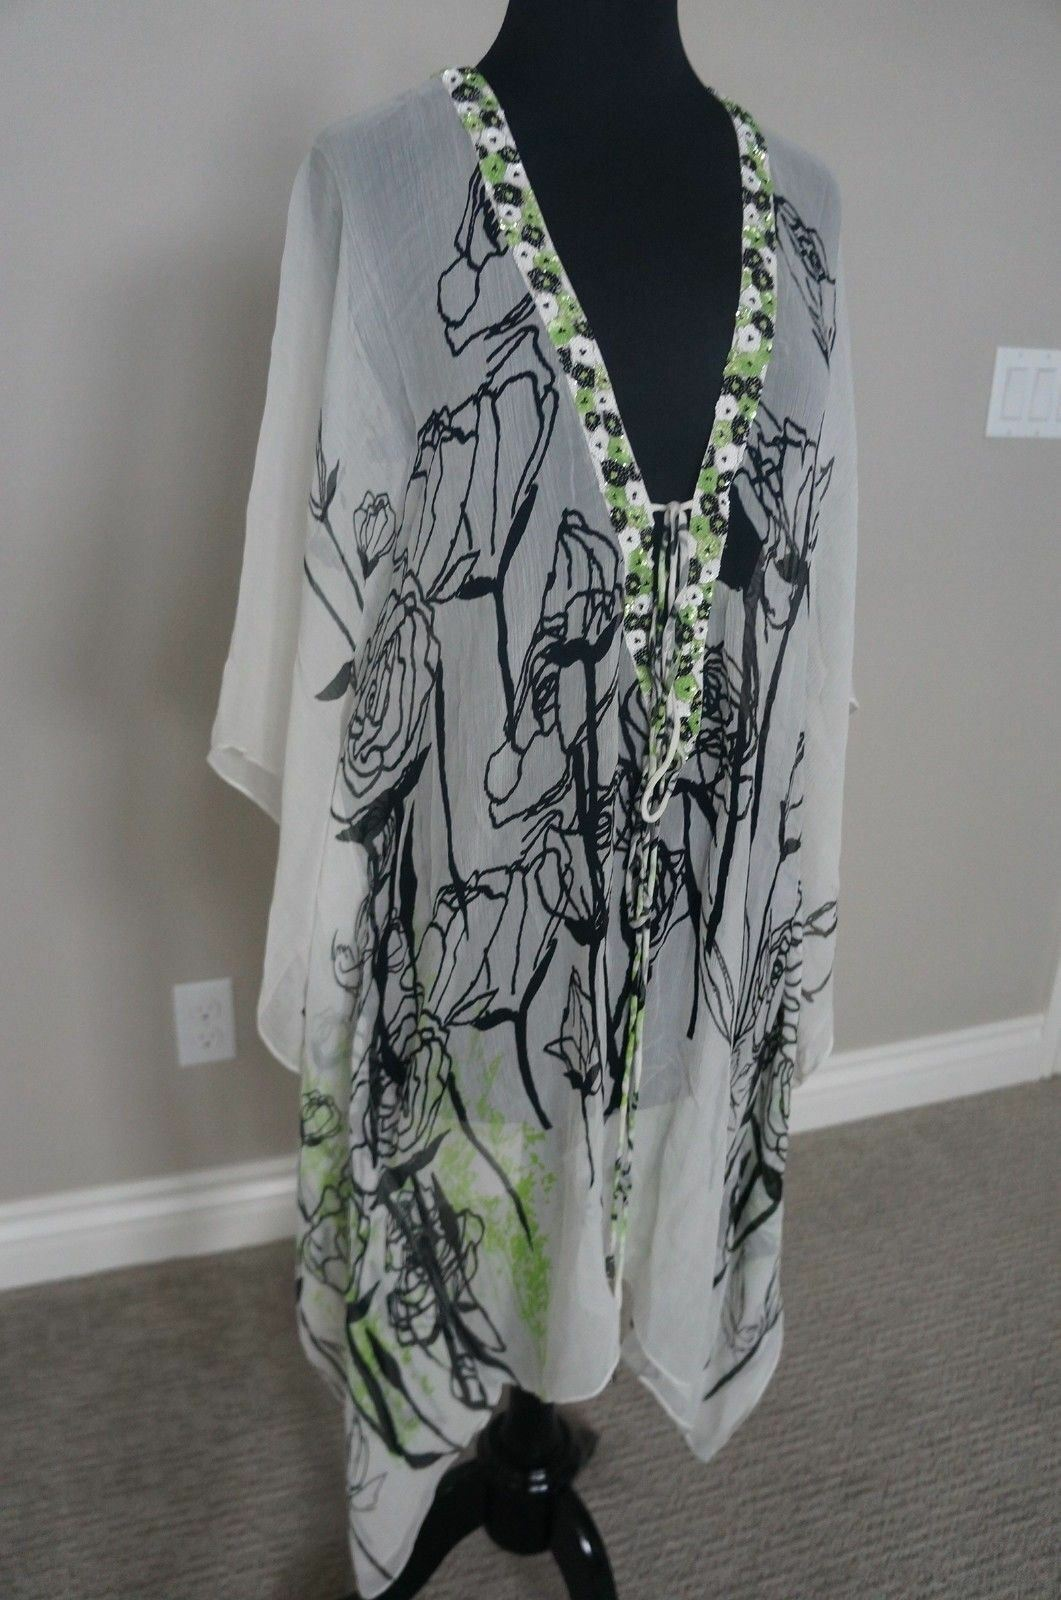 NEW Pashma Petanu Anthropologie Silk Poncho Dress Cover Up Top OS S M L RP